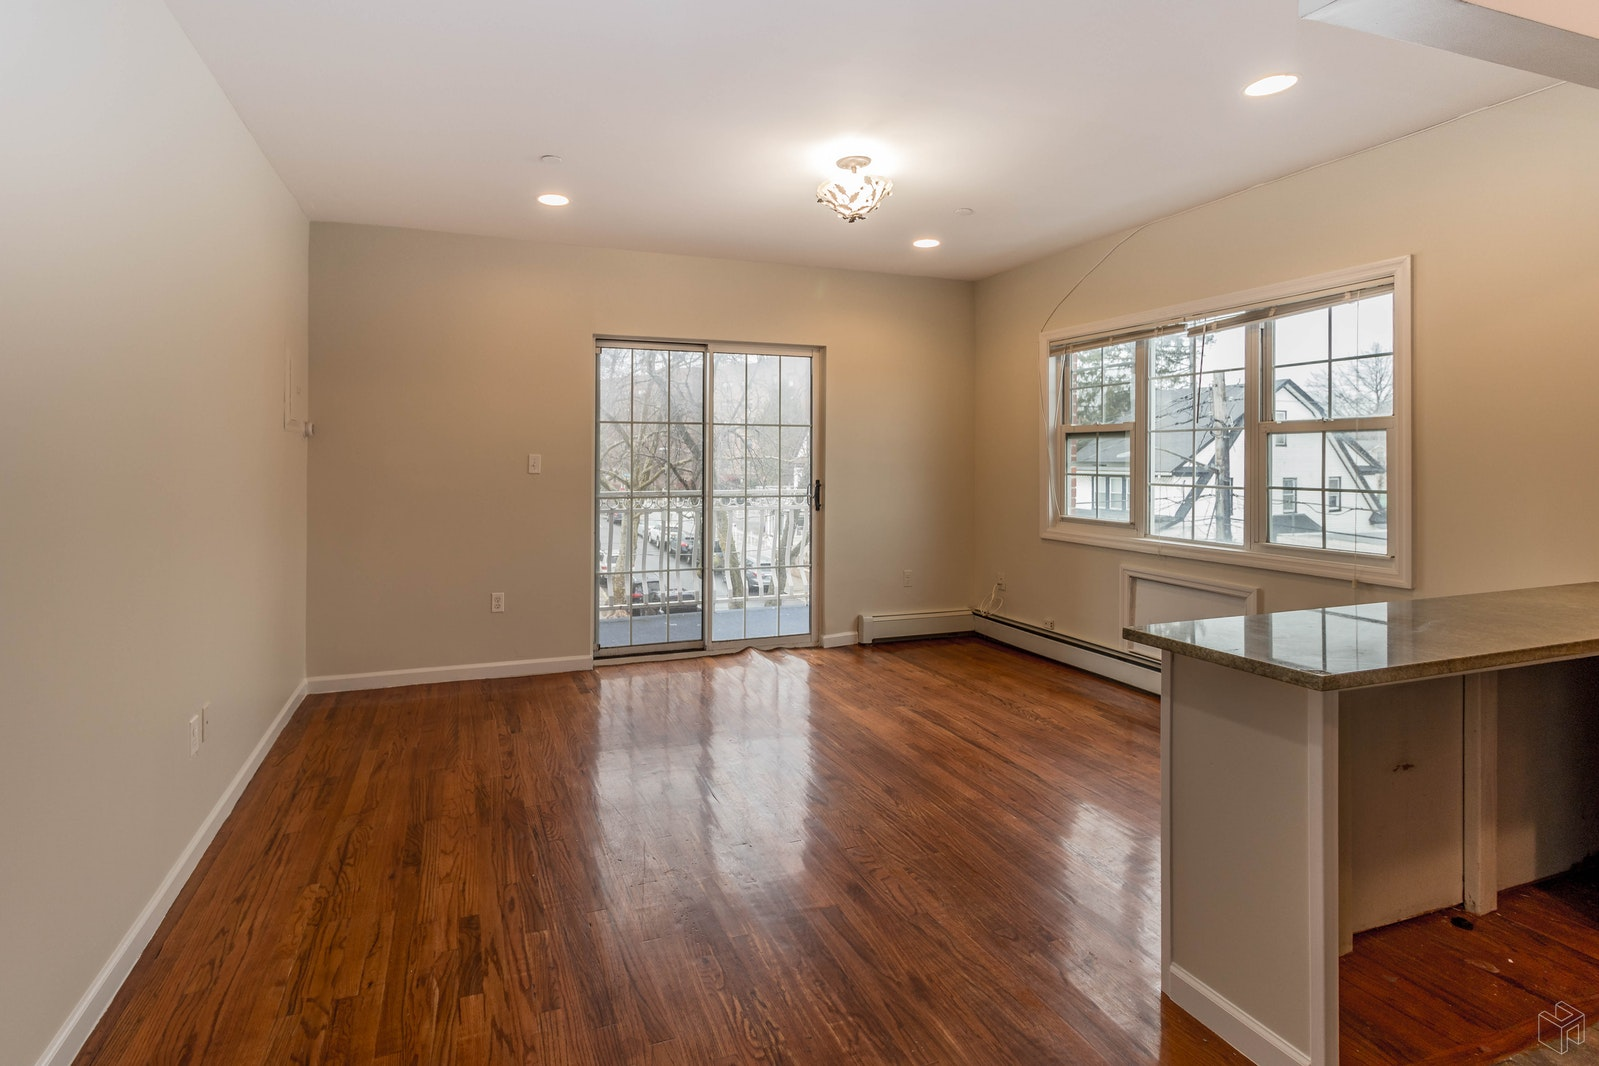 85 -32 131st Street 3a, Kew Gardens, Queens, NY, 11415, Price Not Disclosed, Rented Property, Halstead Real Estate, Photo 5